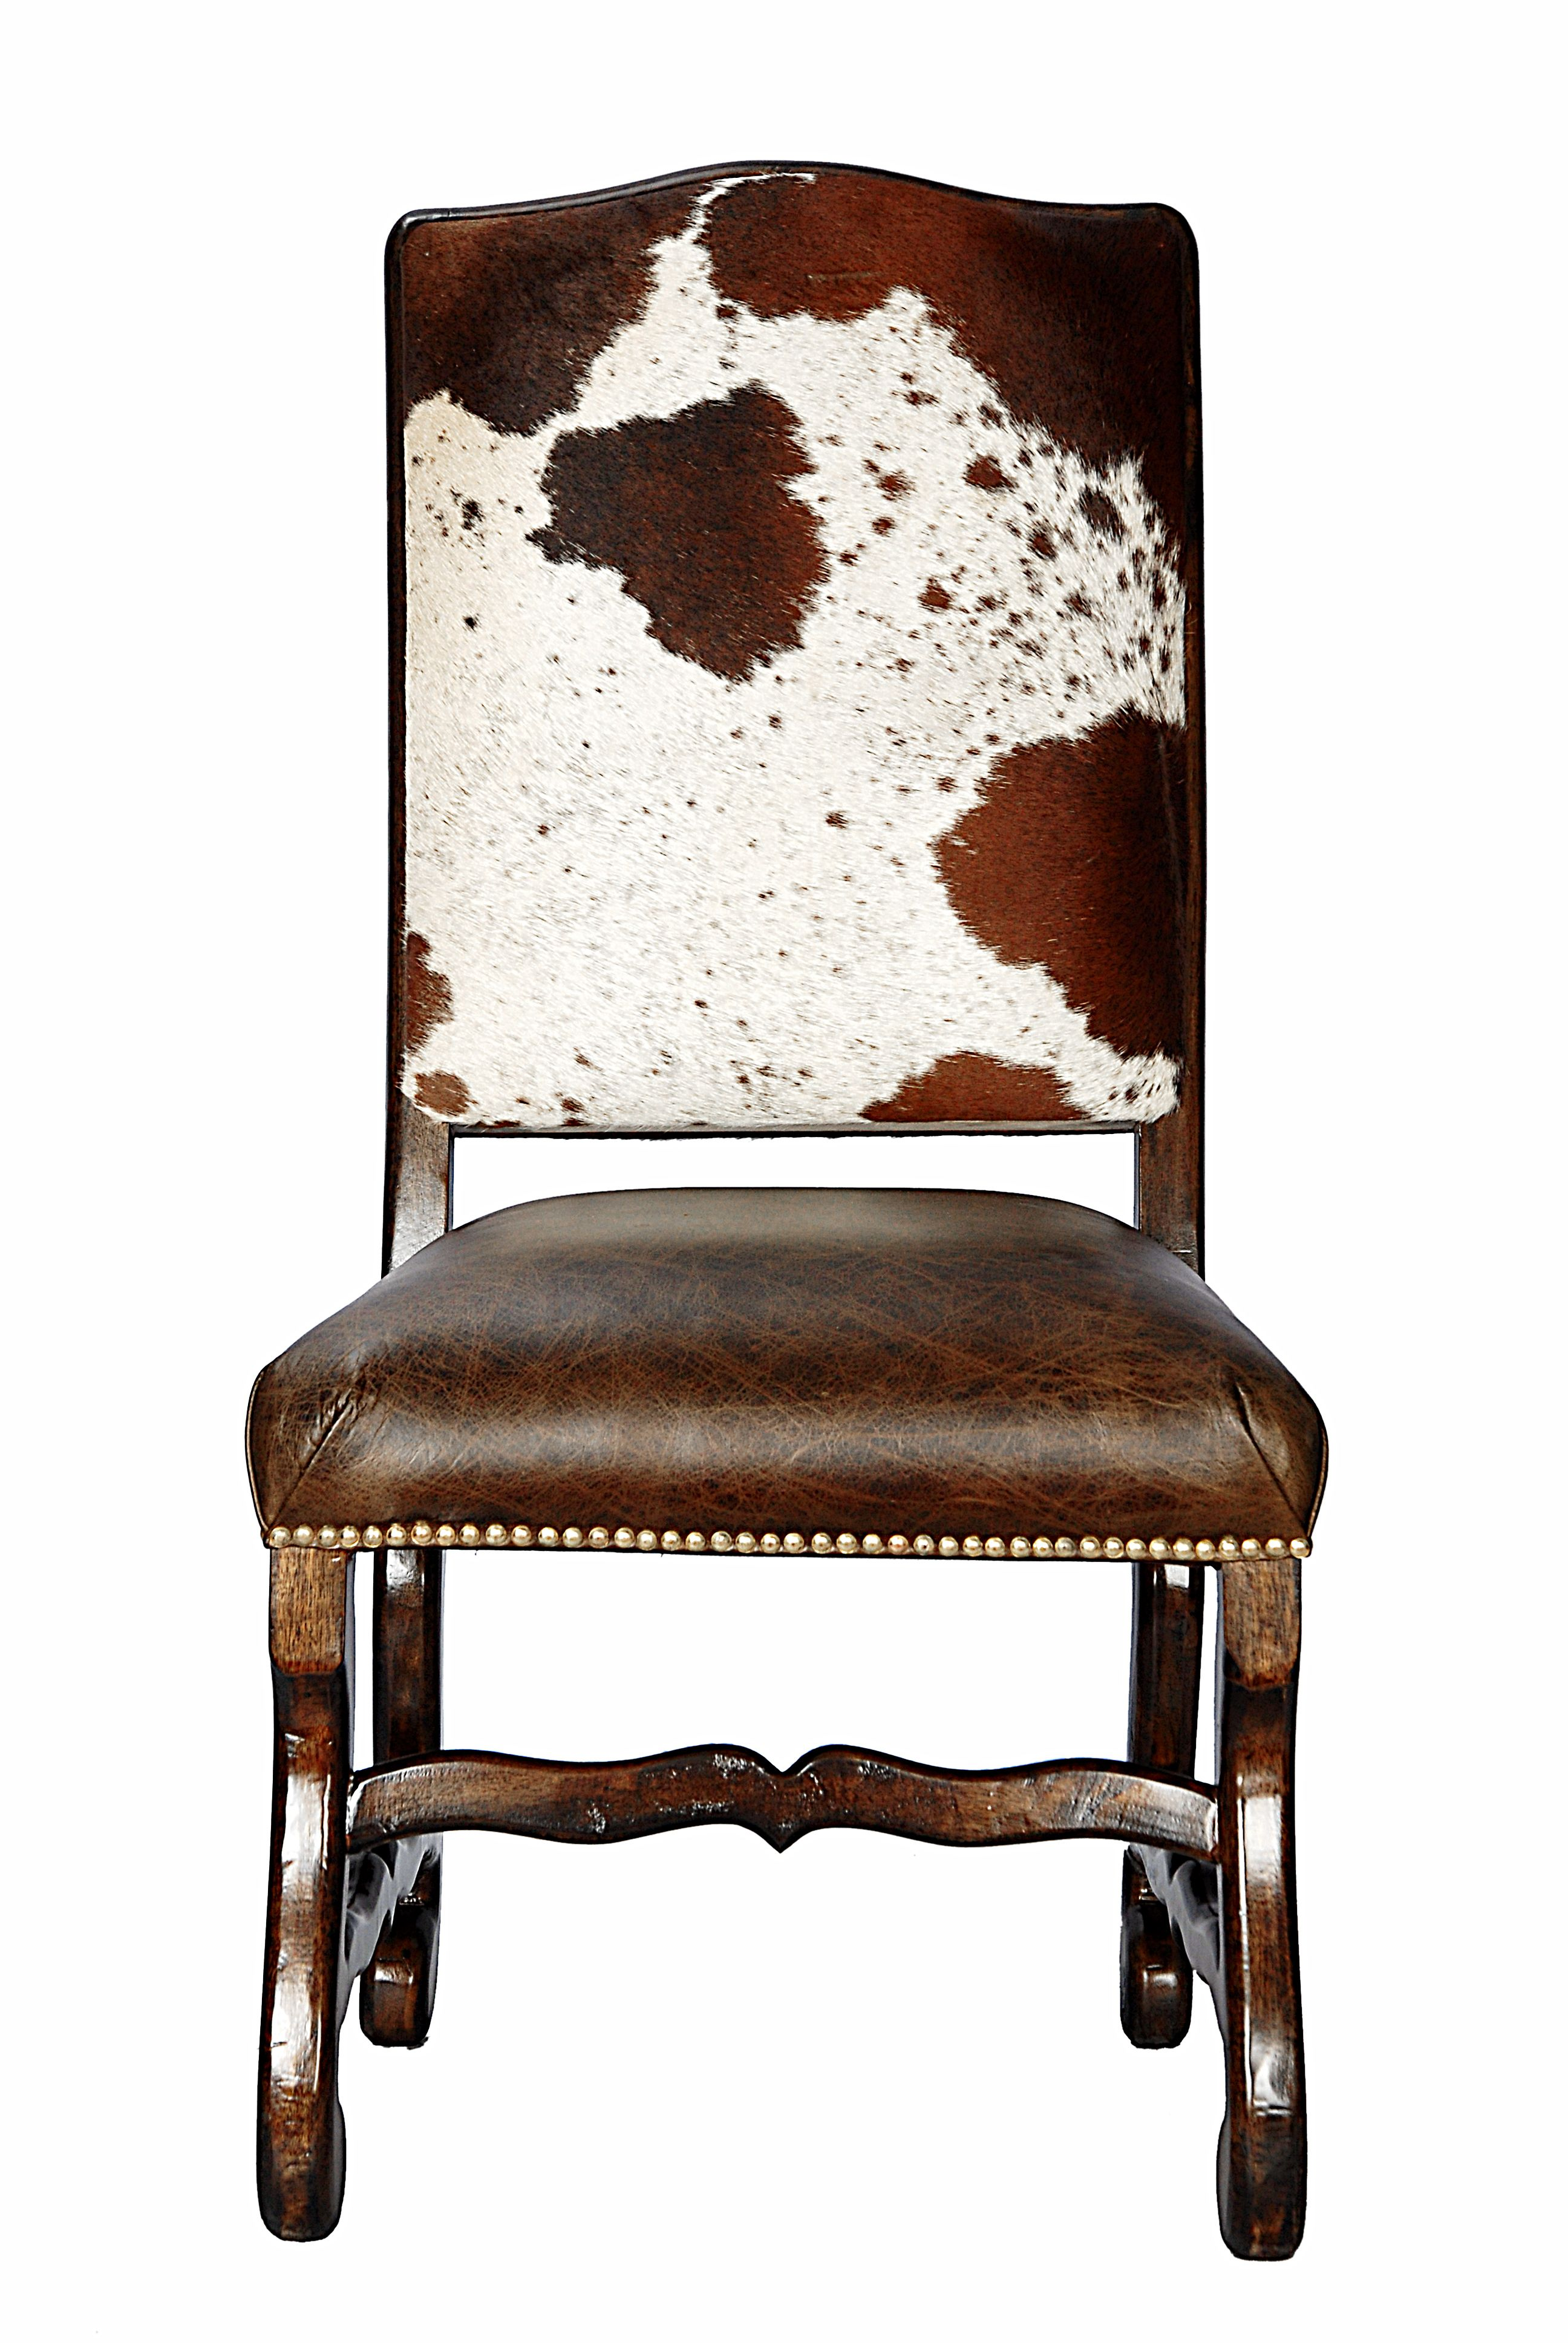 Classic Cowhide Chair $360 Great Chair Options